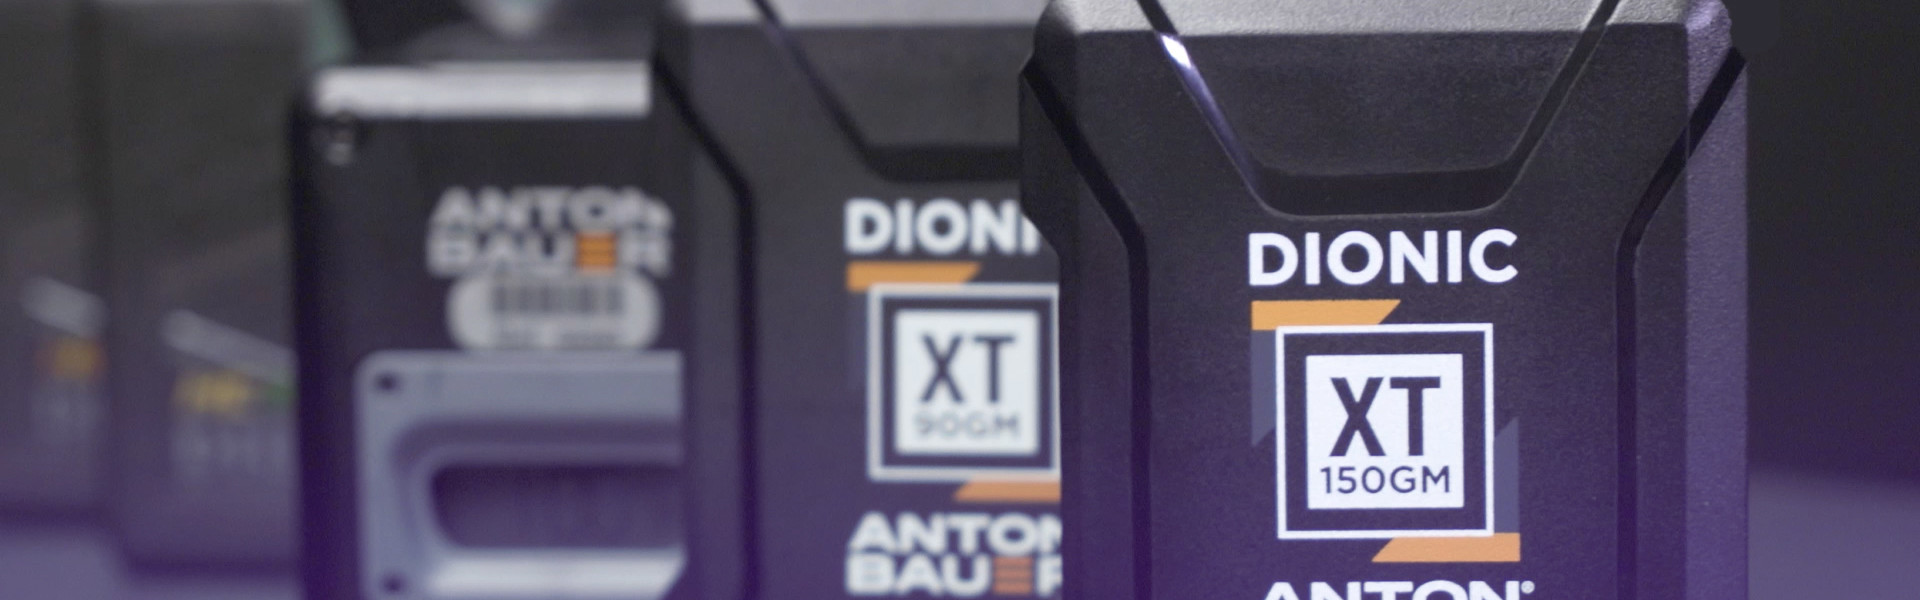 Header image for article At the Bench: Anton Bauer Dionic XT Batteries